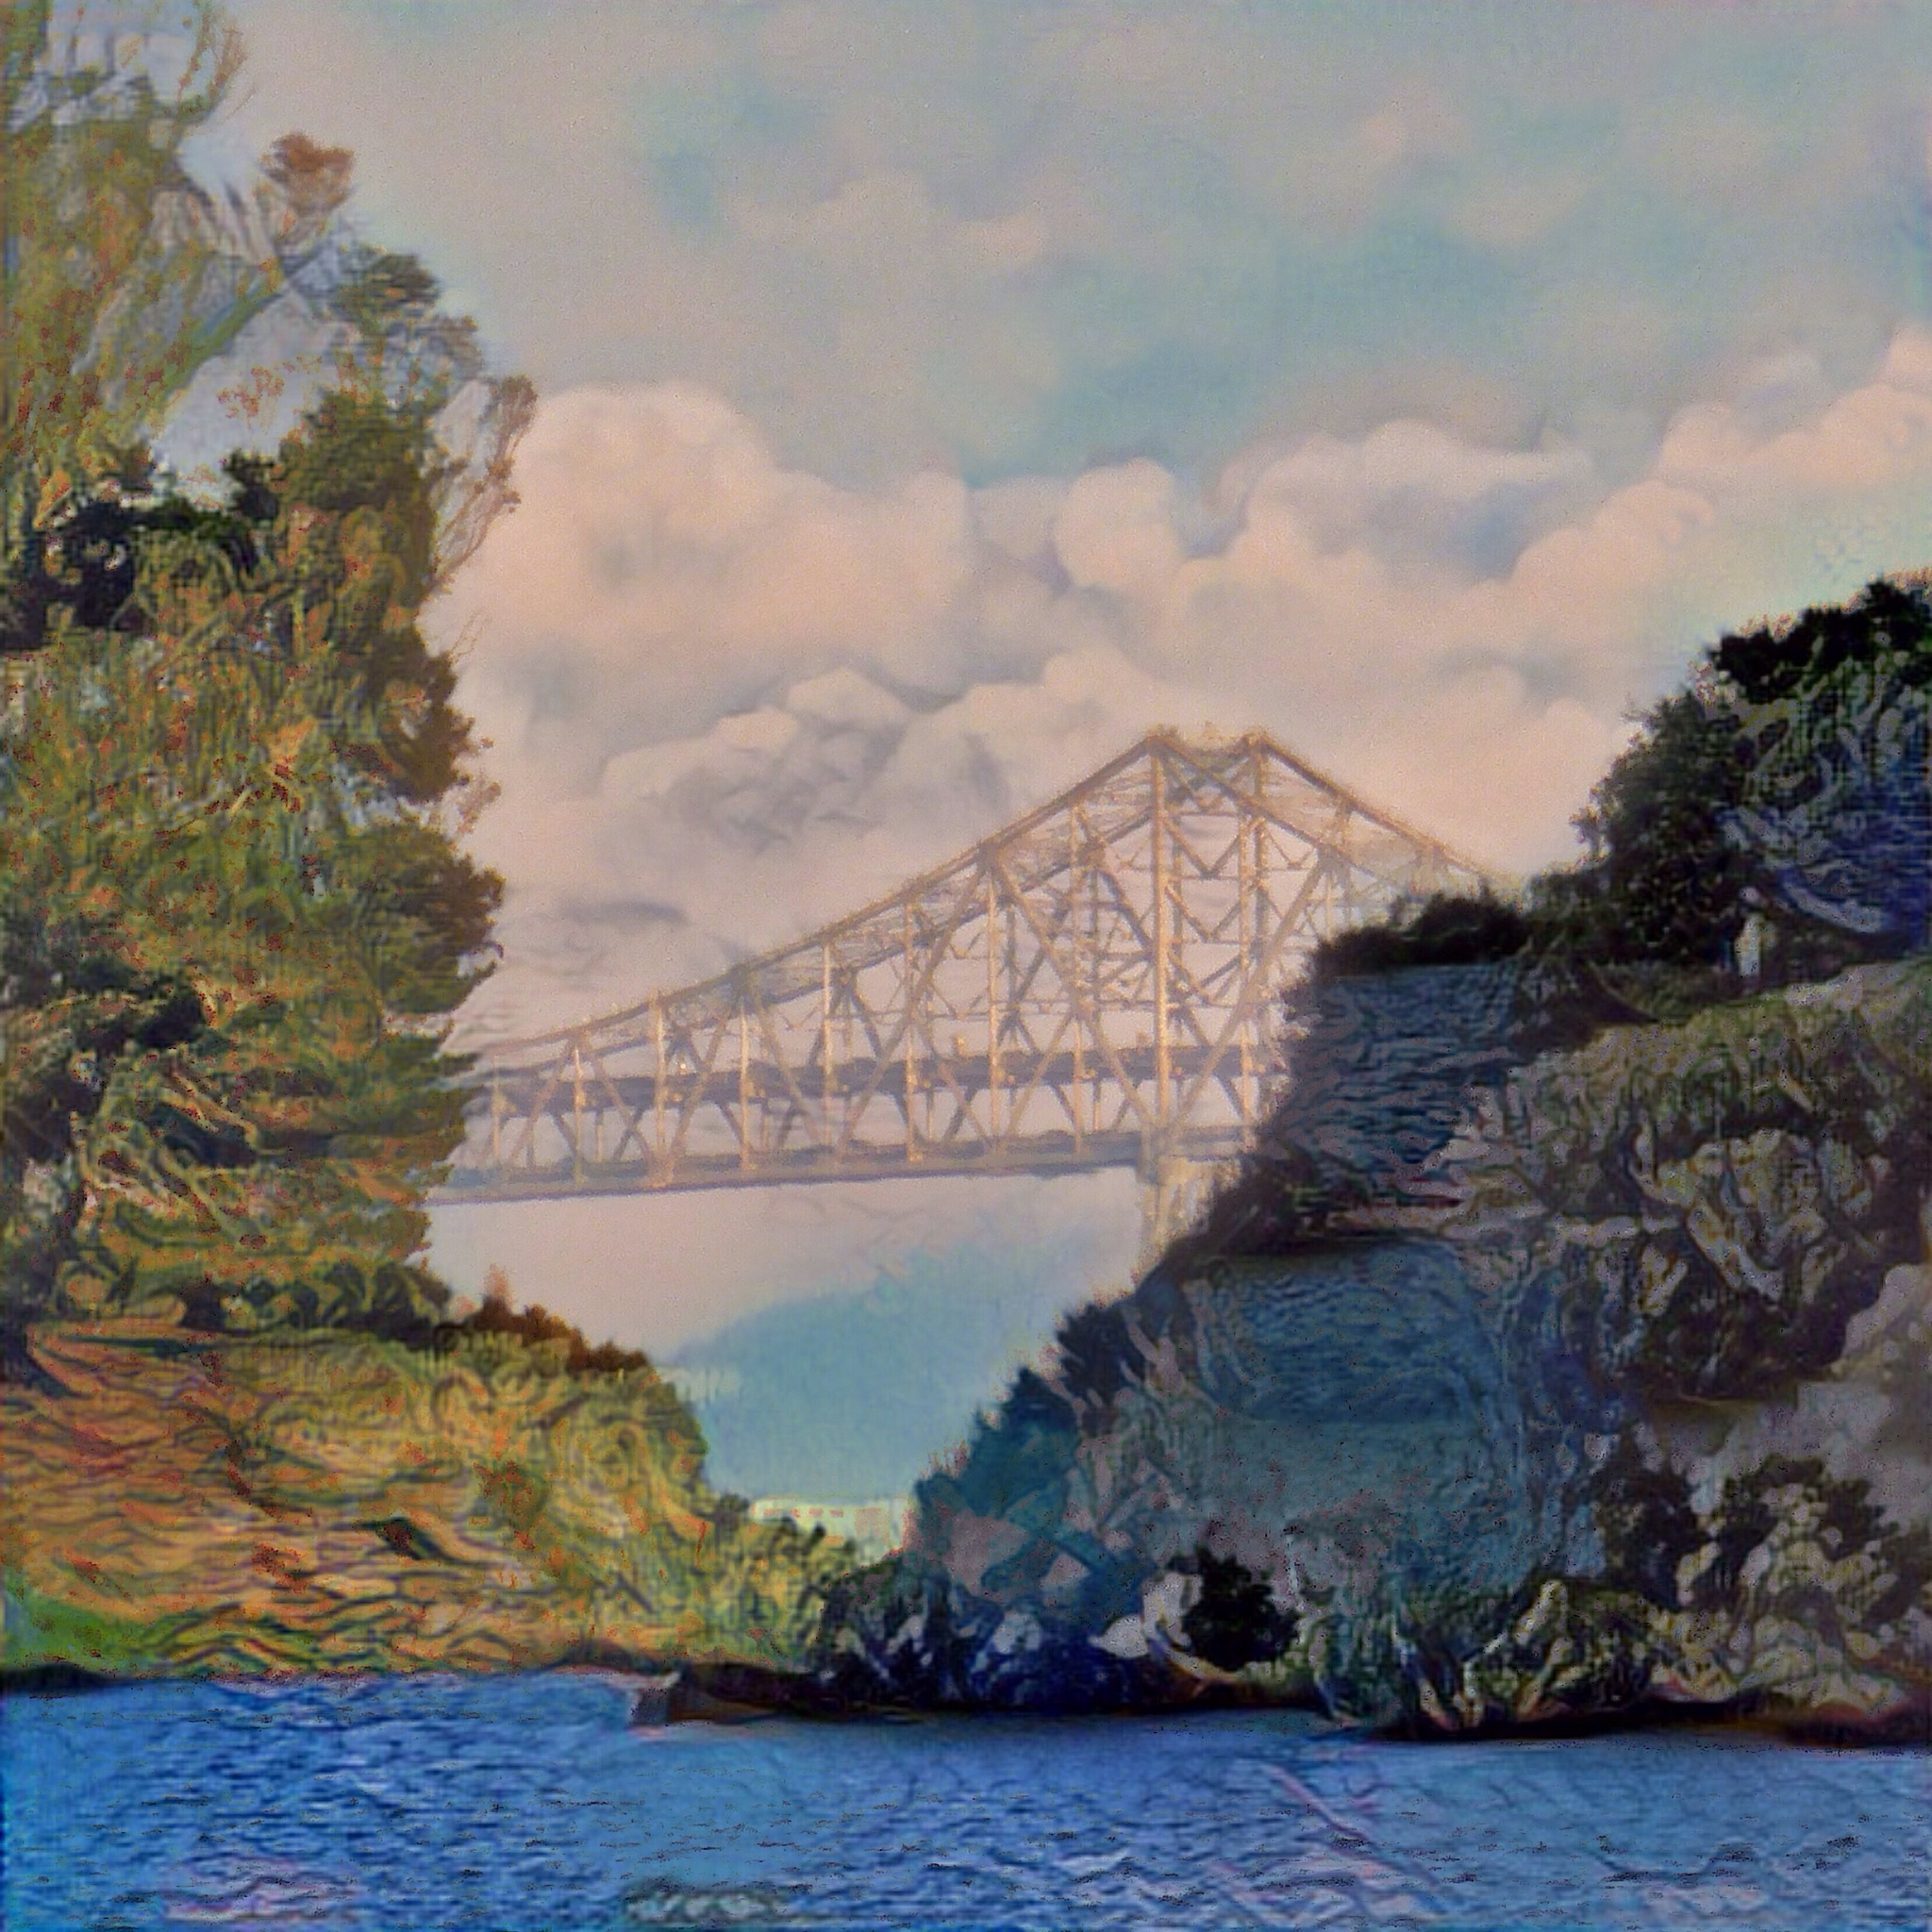 Richmond Bridge-hills by Michael Brunsfeld